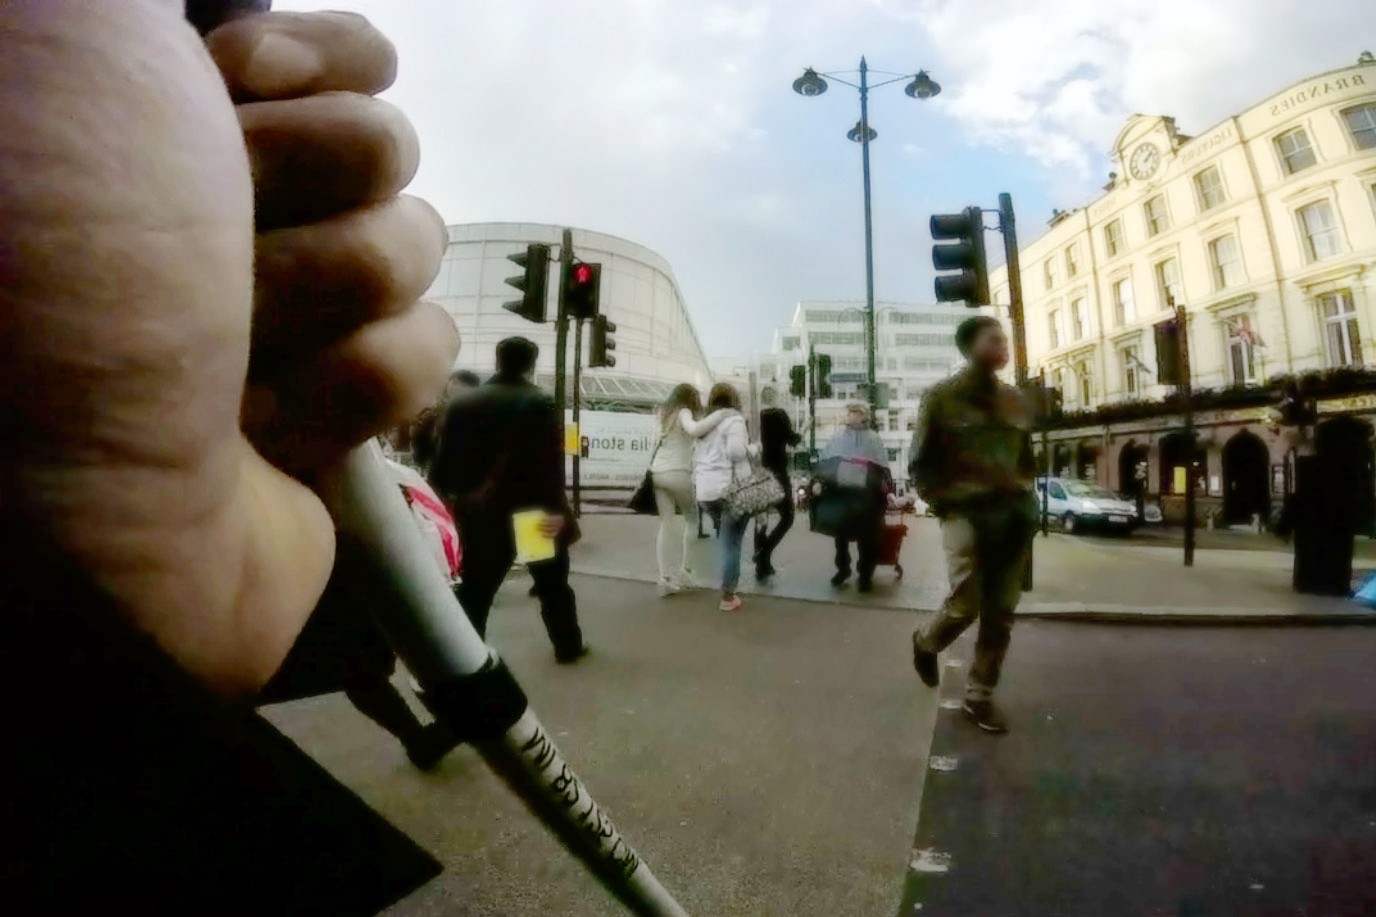 Close up of research participant's hand holding white cane standing at a pelican crossing in daylight.